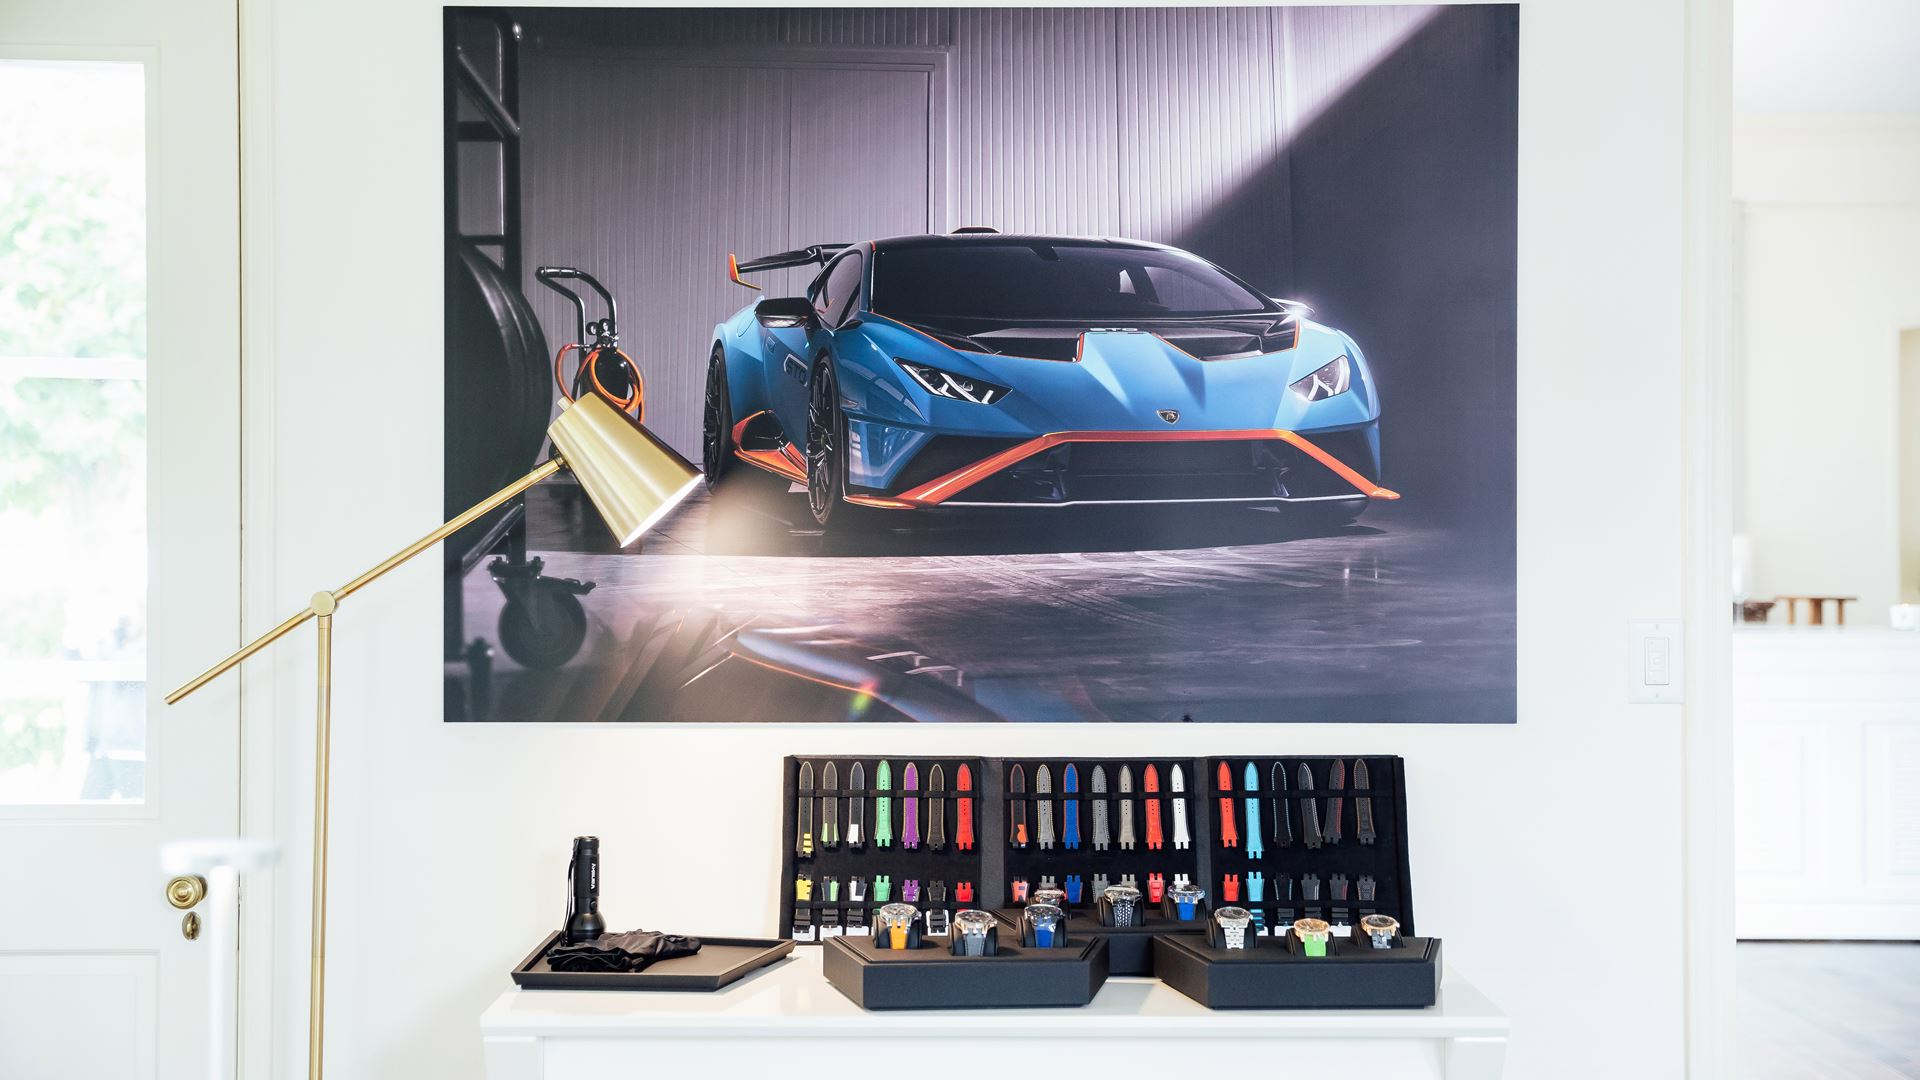 Lamborghini Opens Private Lounge During Monterey Car Week 2021 Showcasing the Brand's Ethos and Design DNA - Image 2